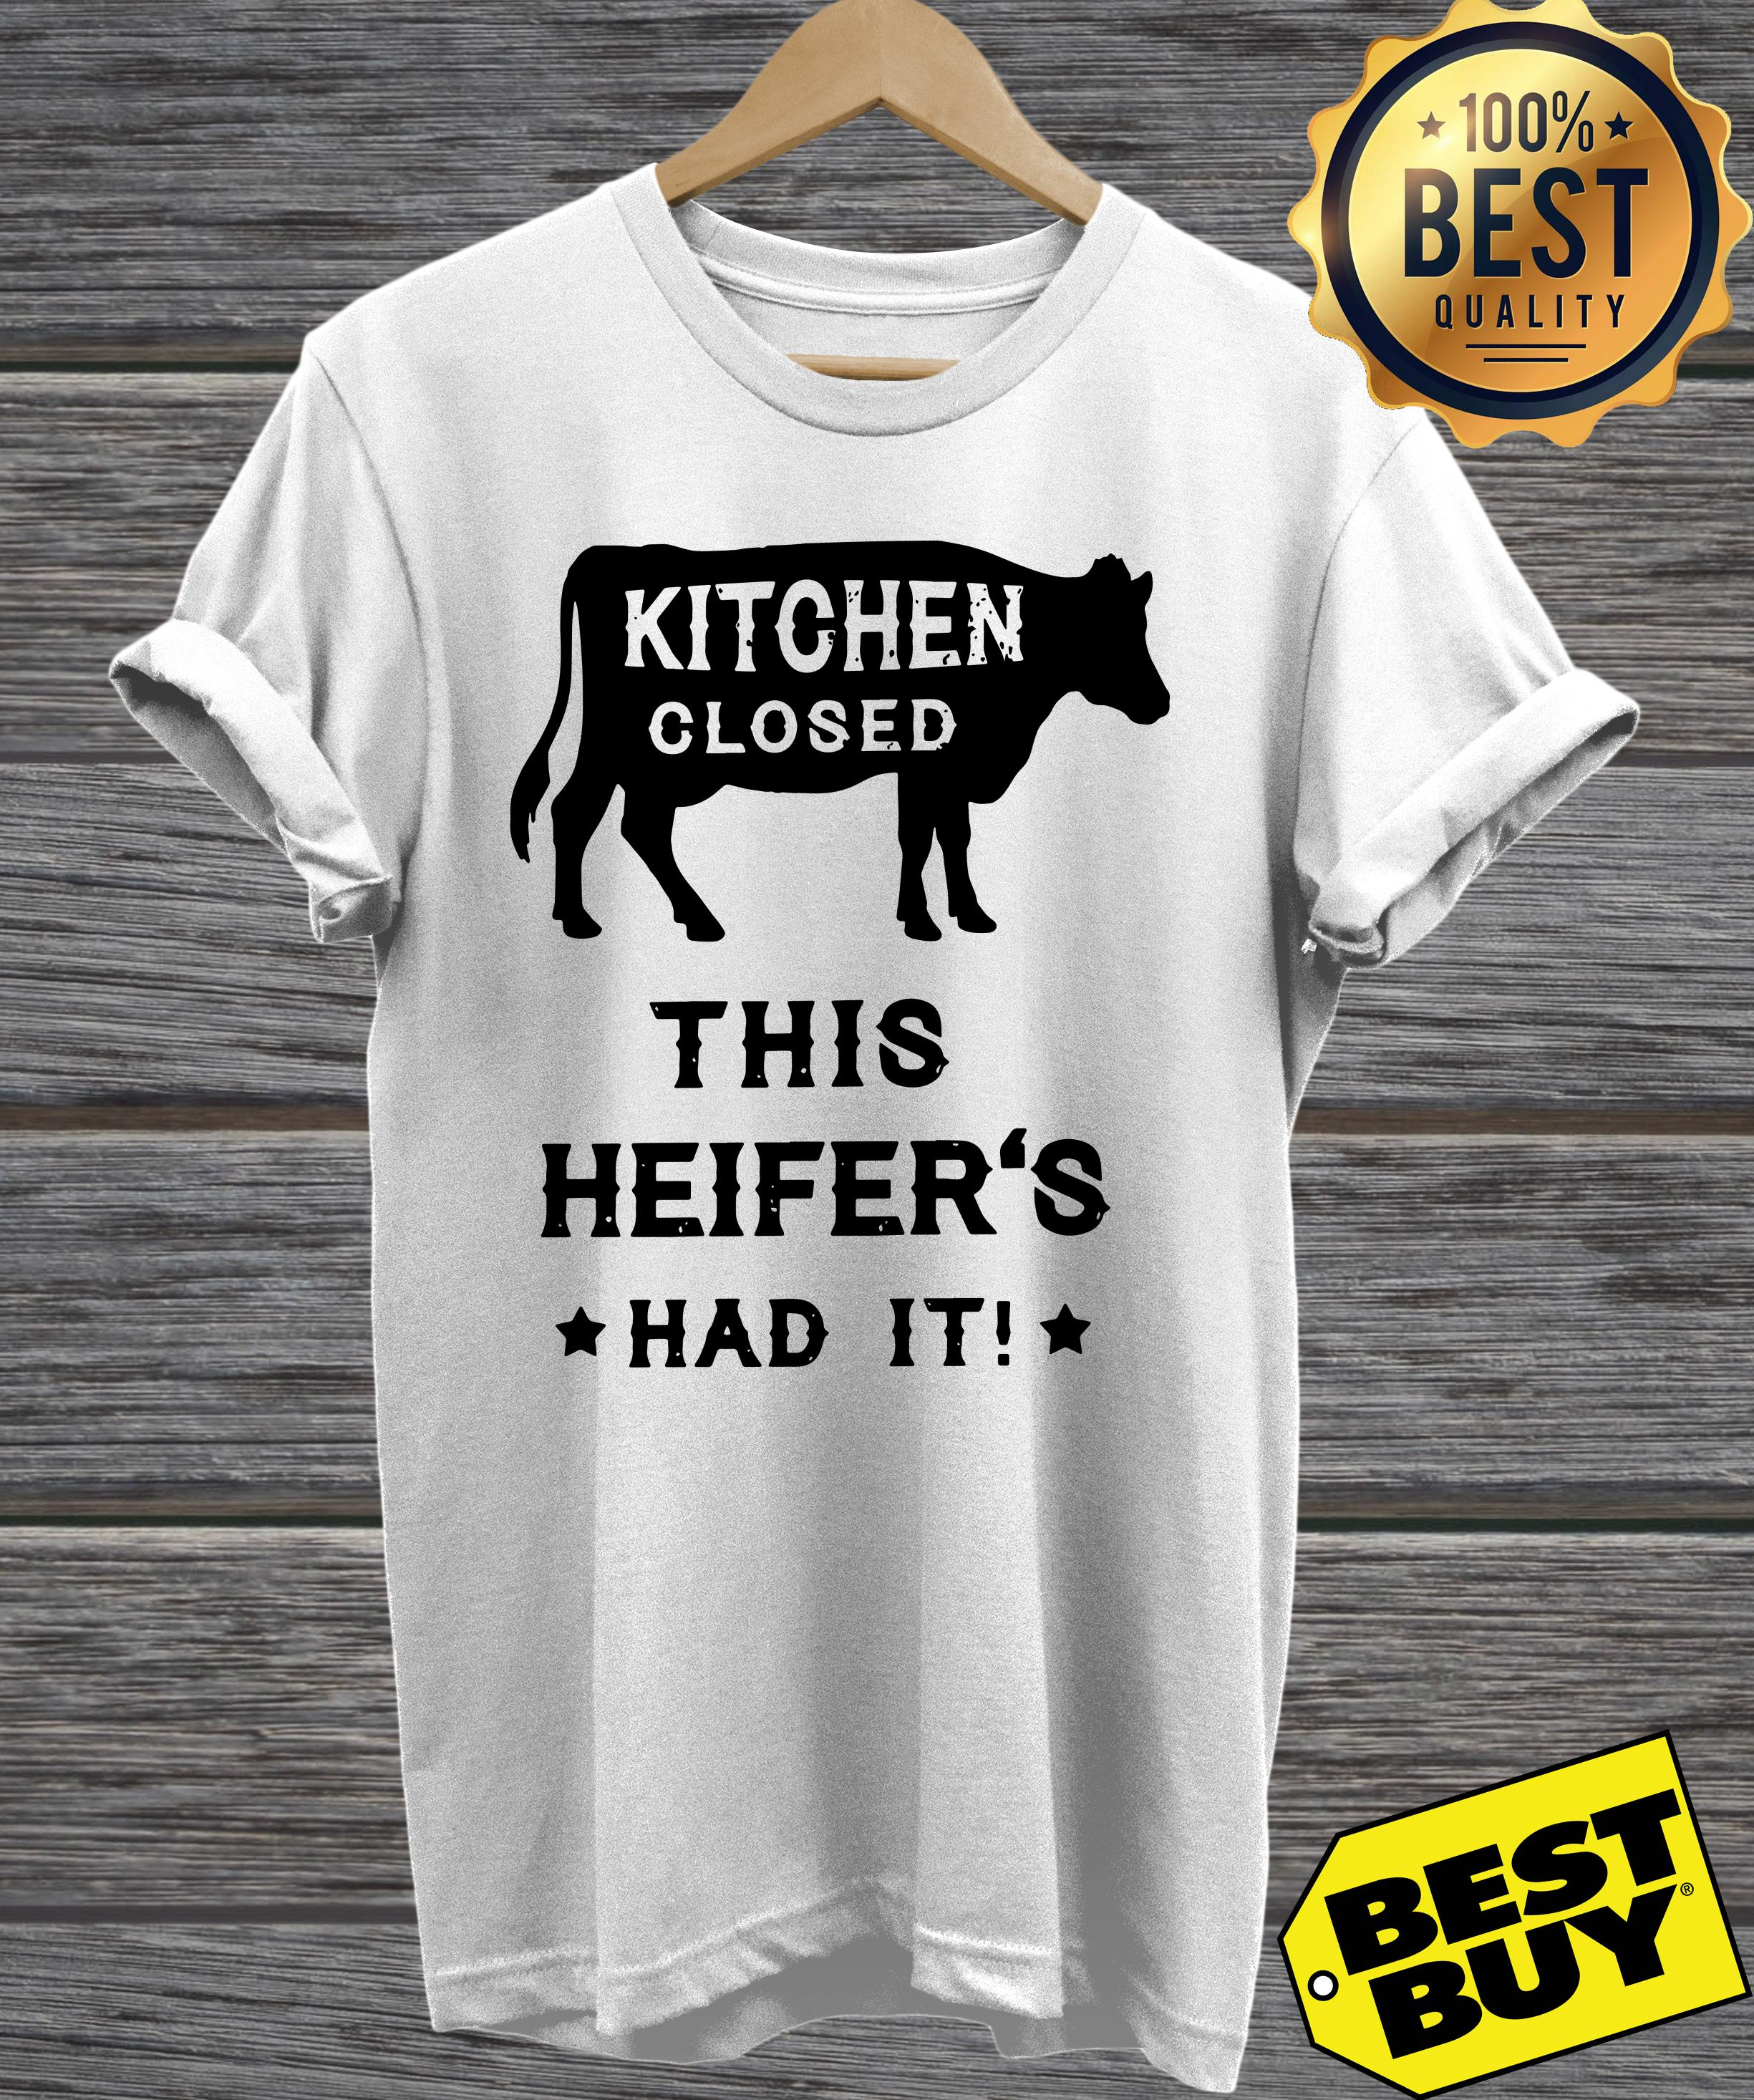 Kitchen closed this heifer's had it hoodie